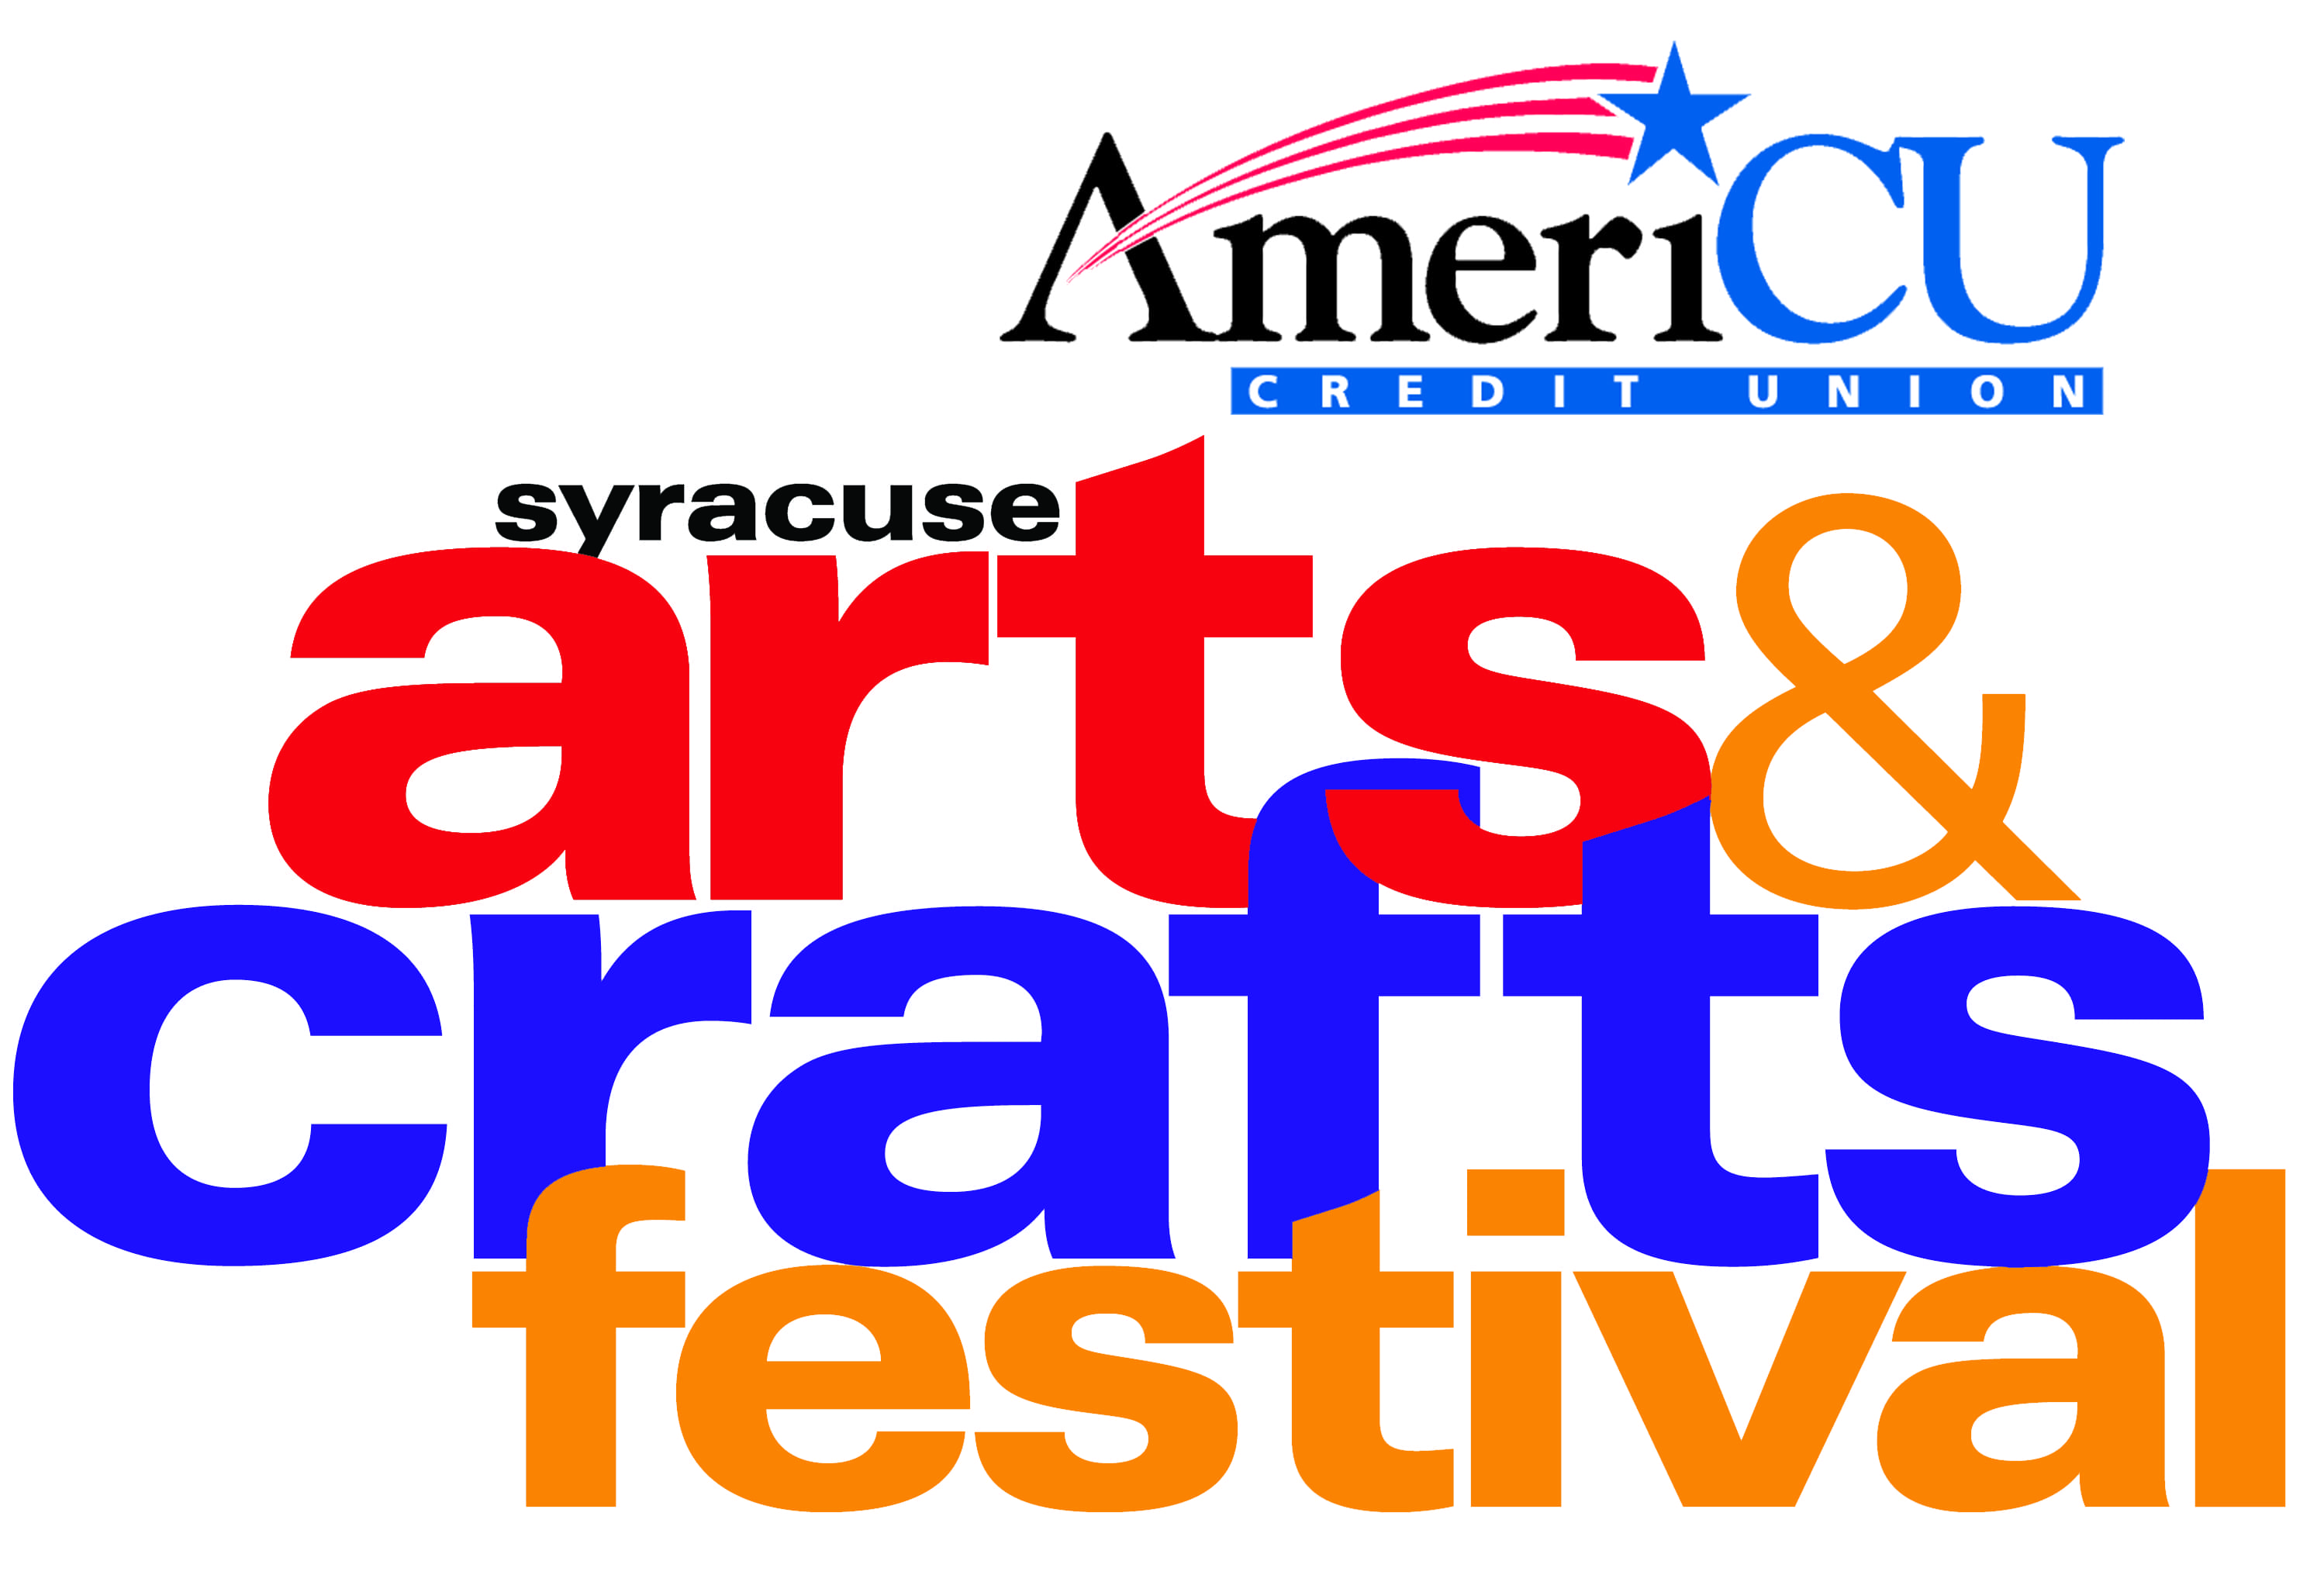 Americu Syracuse Arts & Crafts Festival | July 26th-28th